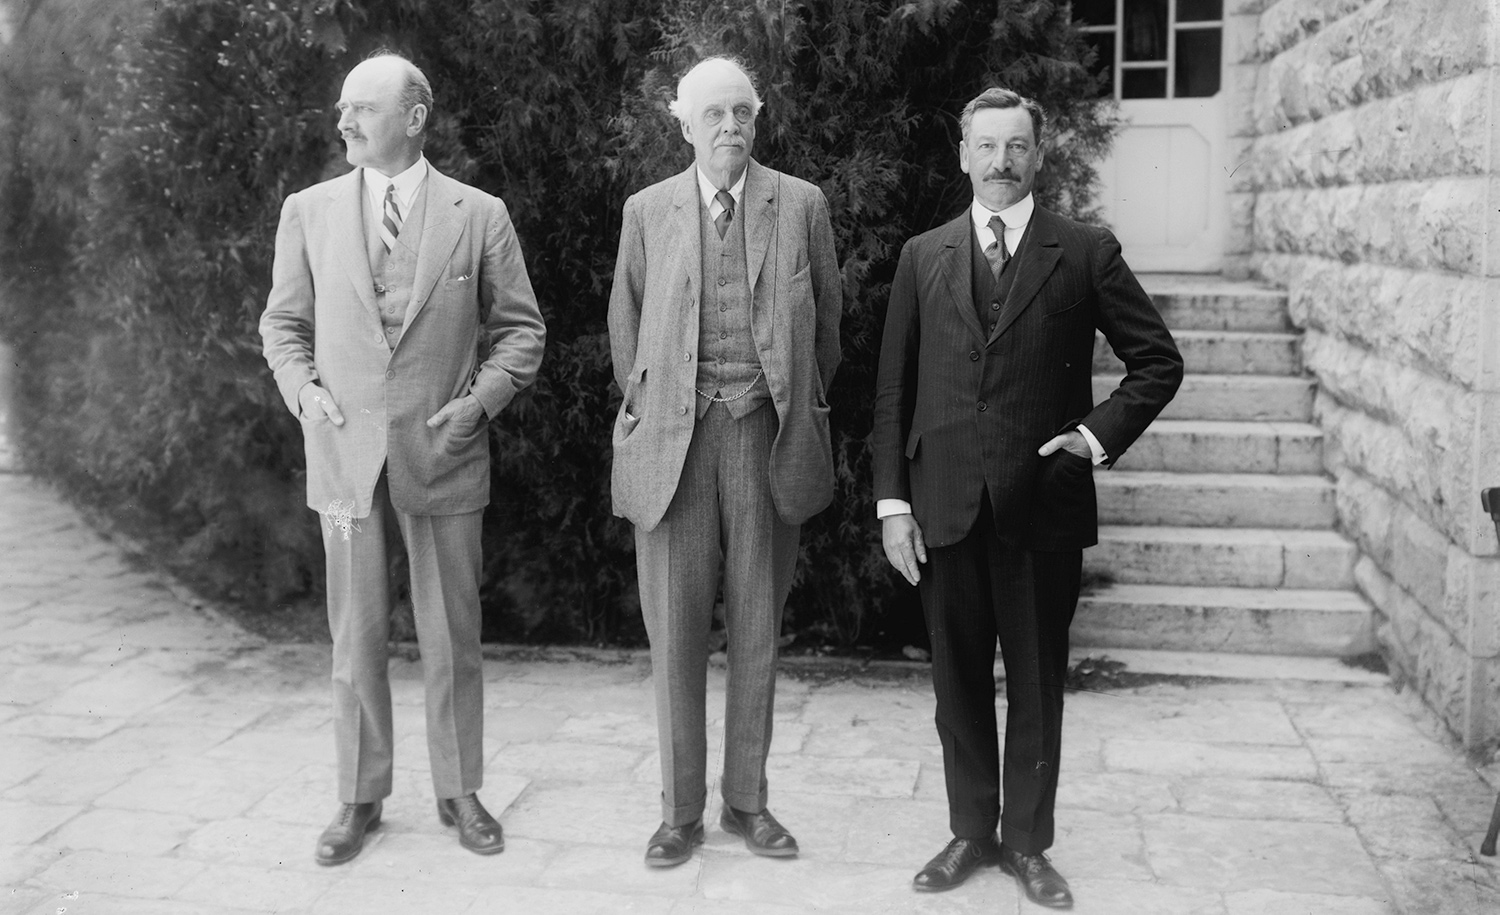 Lord Allenby, Lord Balfour, and Sir Herbert Samuel in 1925. Universal History Archive/Universal Images Group via Getty Images.